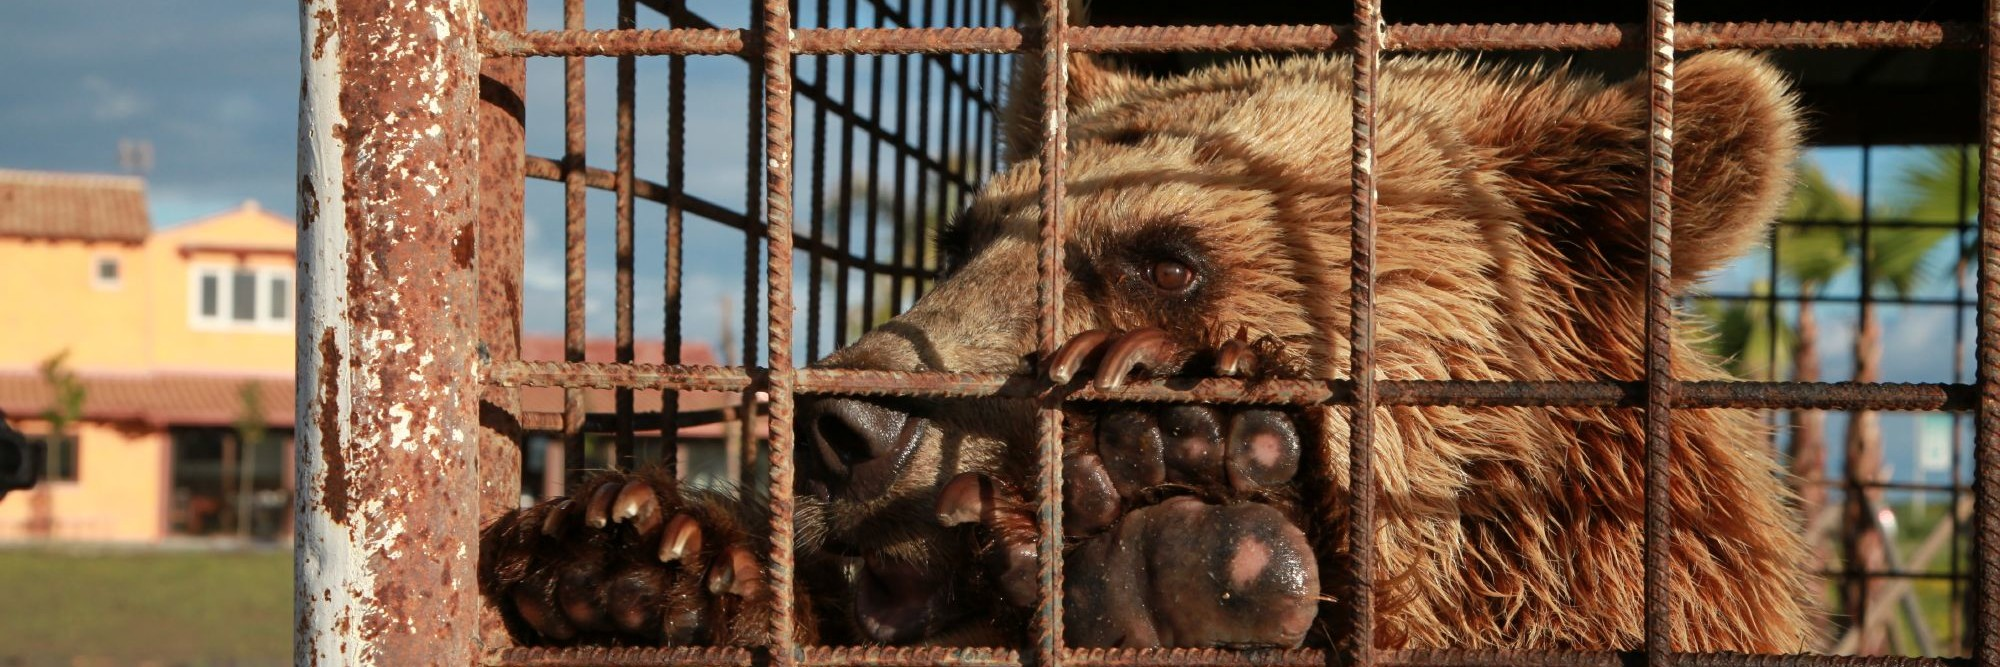 Bear in a cage in Albania